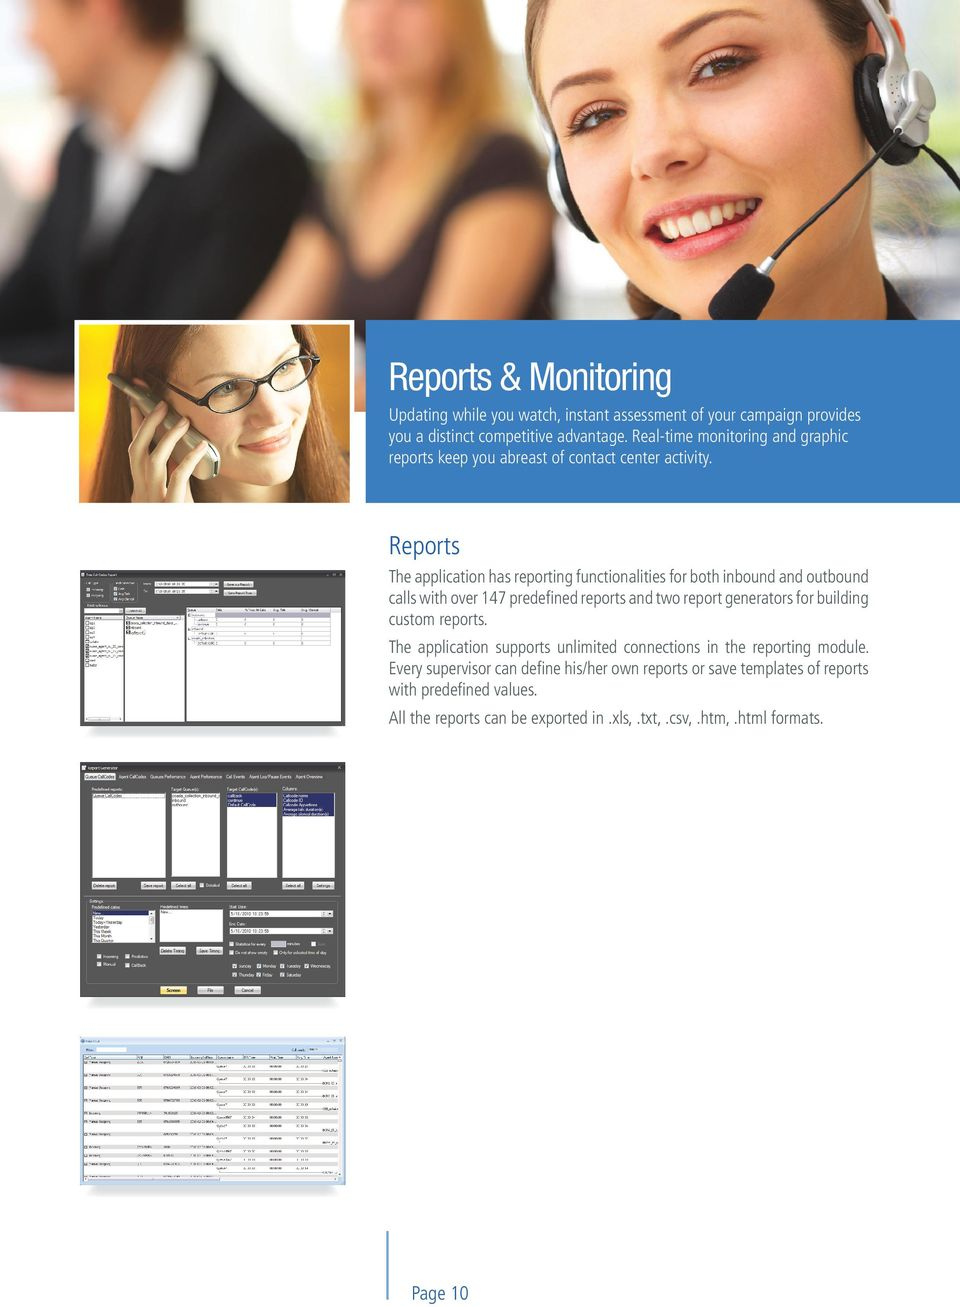 Reports The application has reporting functionalities for both inbound and outbound calls with over 147 predefined reports and two report generators for